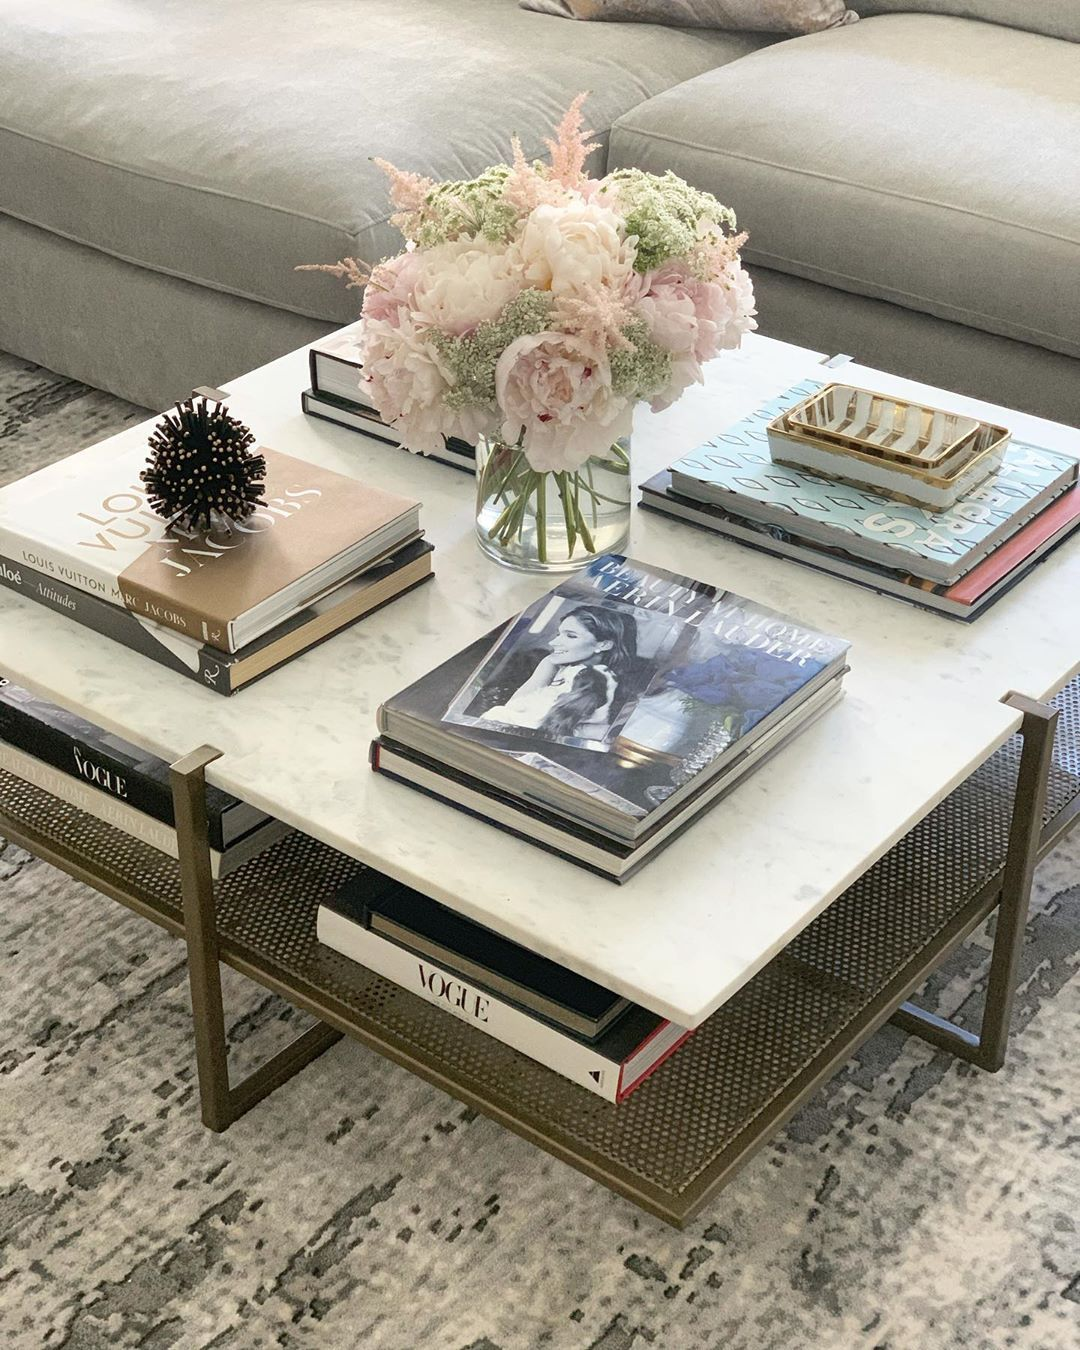 High Fashion Home On Instagram Love A Two Tier Coffee Table That S Gorgeous And Functional And If You Need Great Coffee Coffee Table High Fashion Home Decor [ 1350 x 1080 Pixel ]